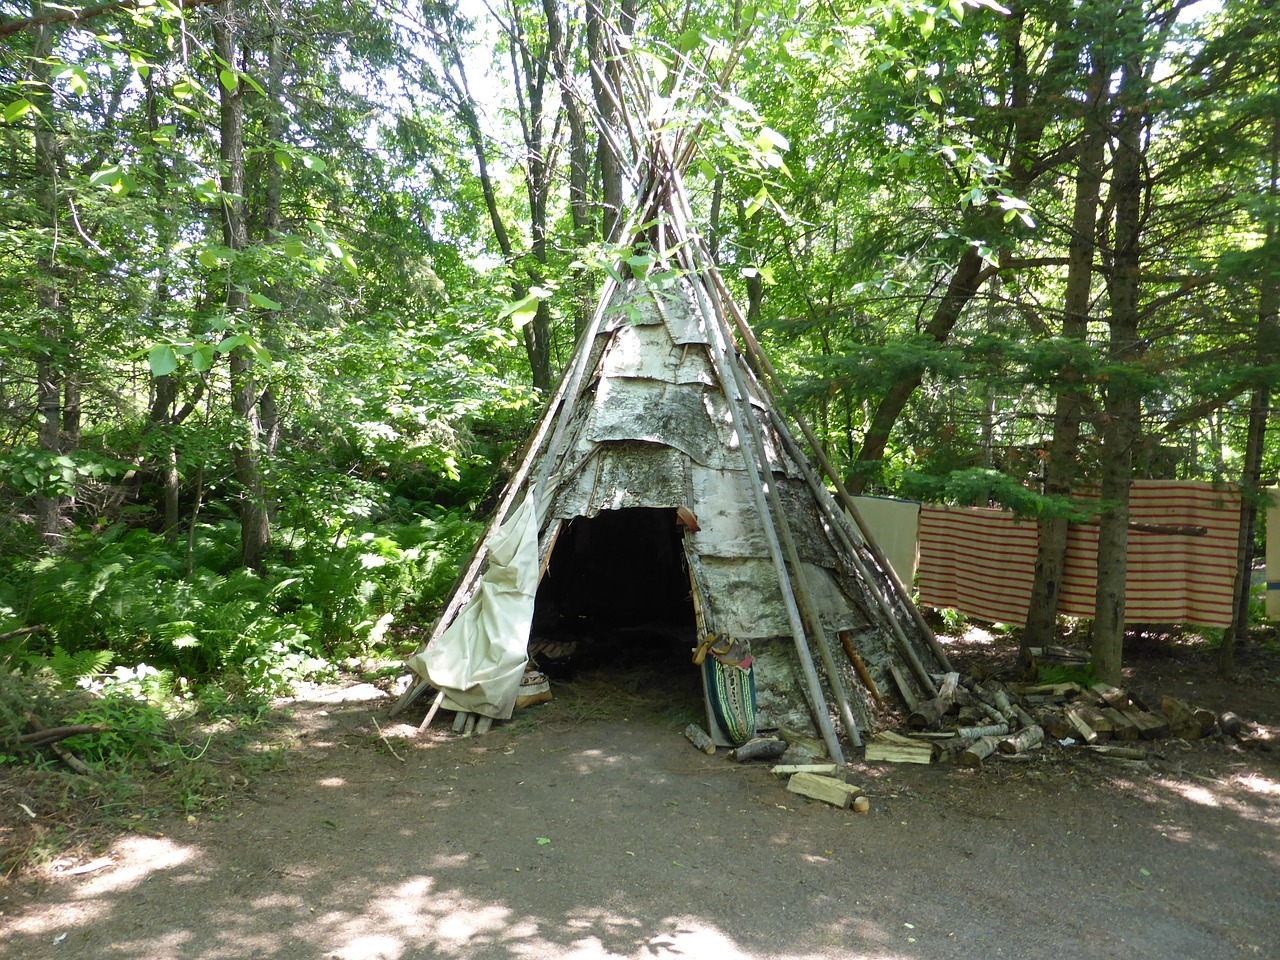 wigwam,shelter,first nations,traditional,dwelling,aboriginal,summer,historic,thunder bay,fort william,free pictures, free photos, free images, royalty free, free illustrations, public domain